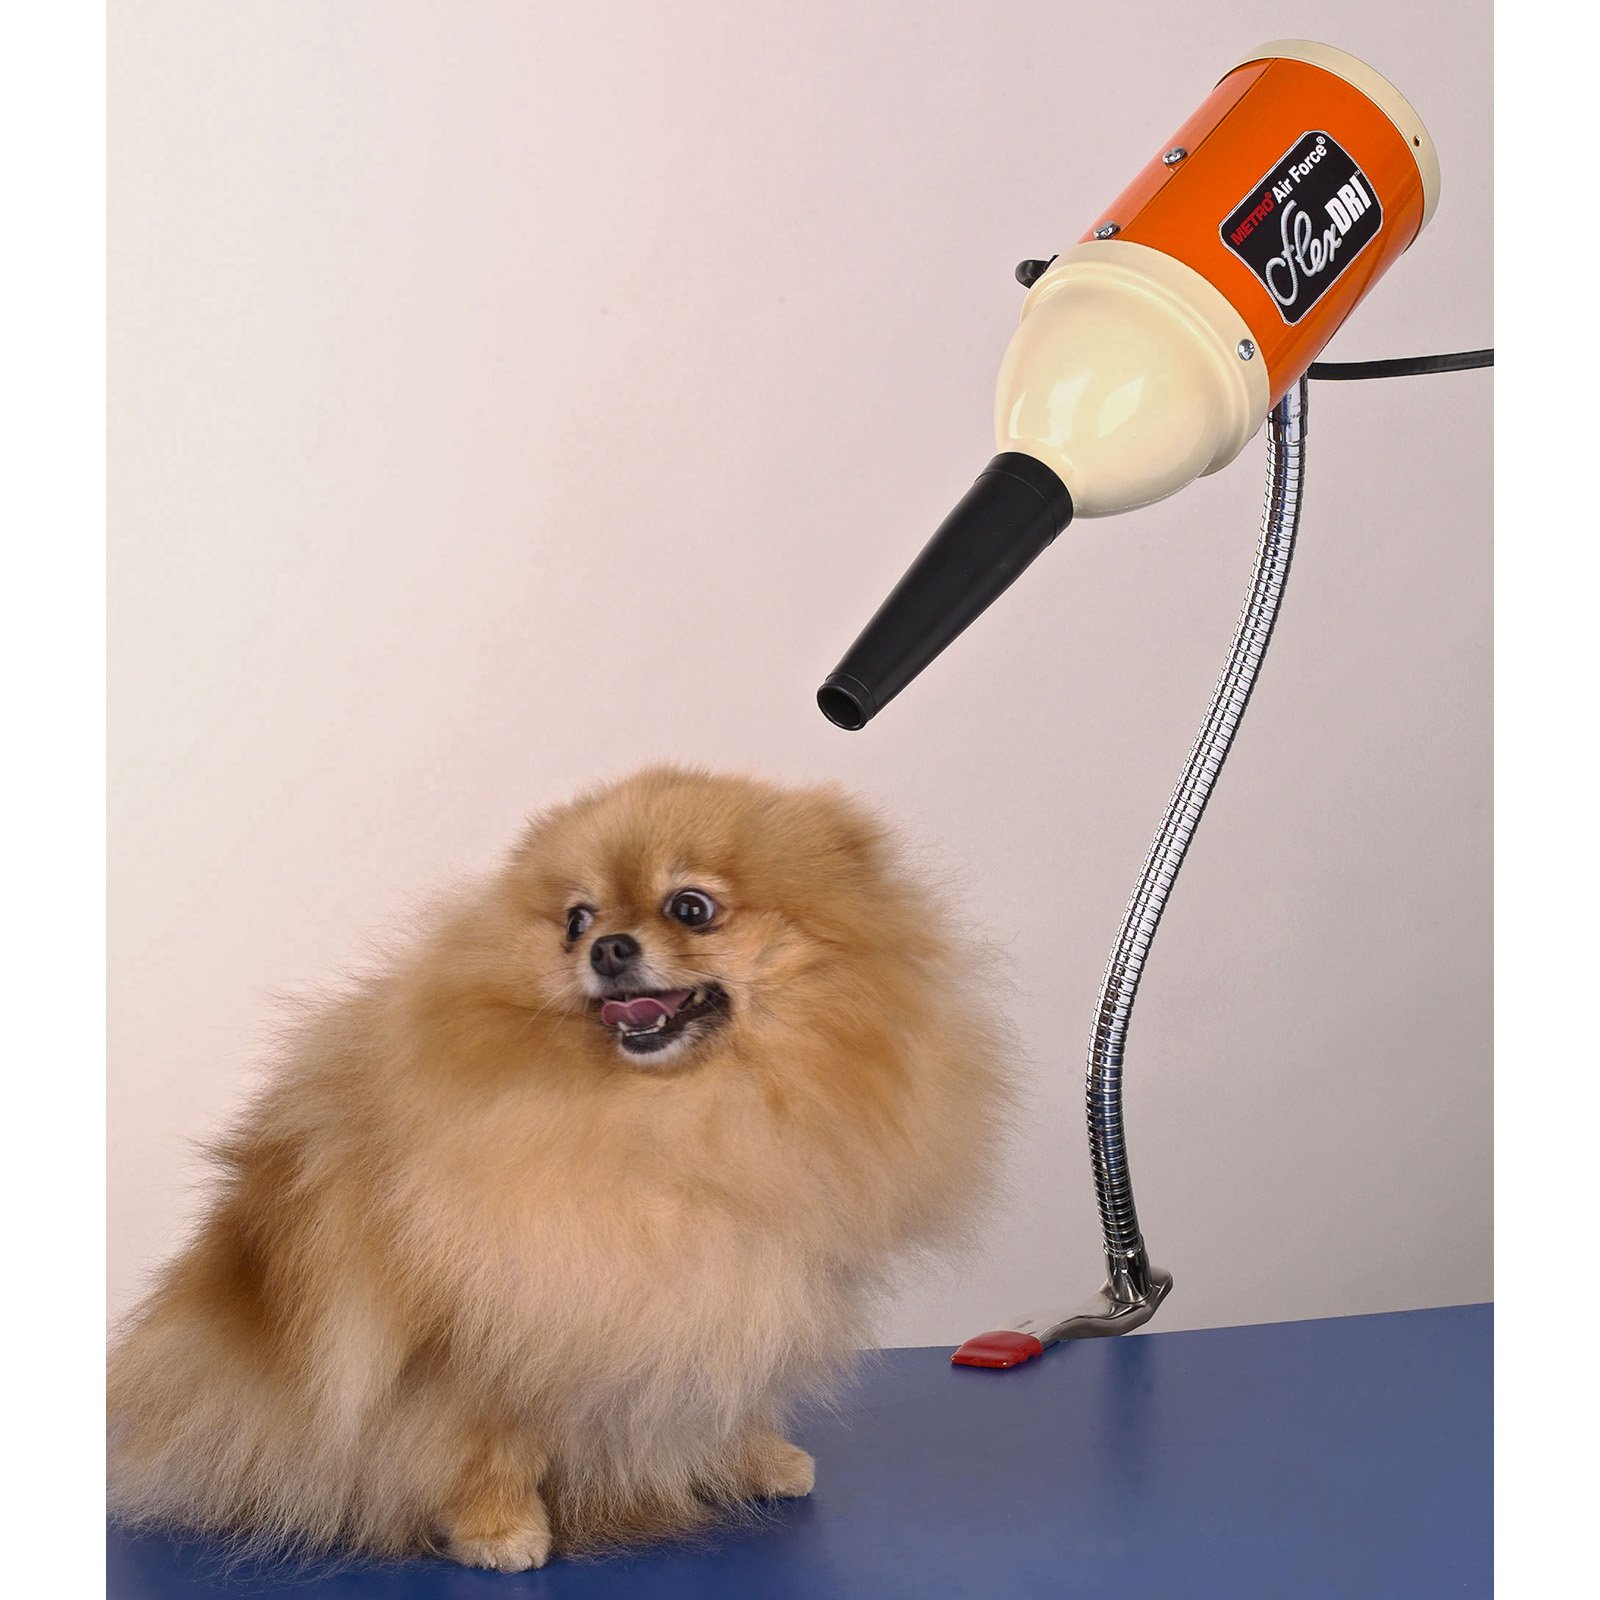 Metrovac FlexDri Dog Grooming Dryer